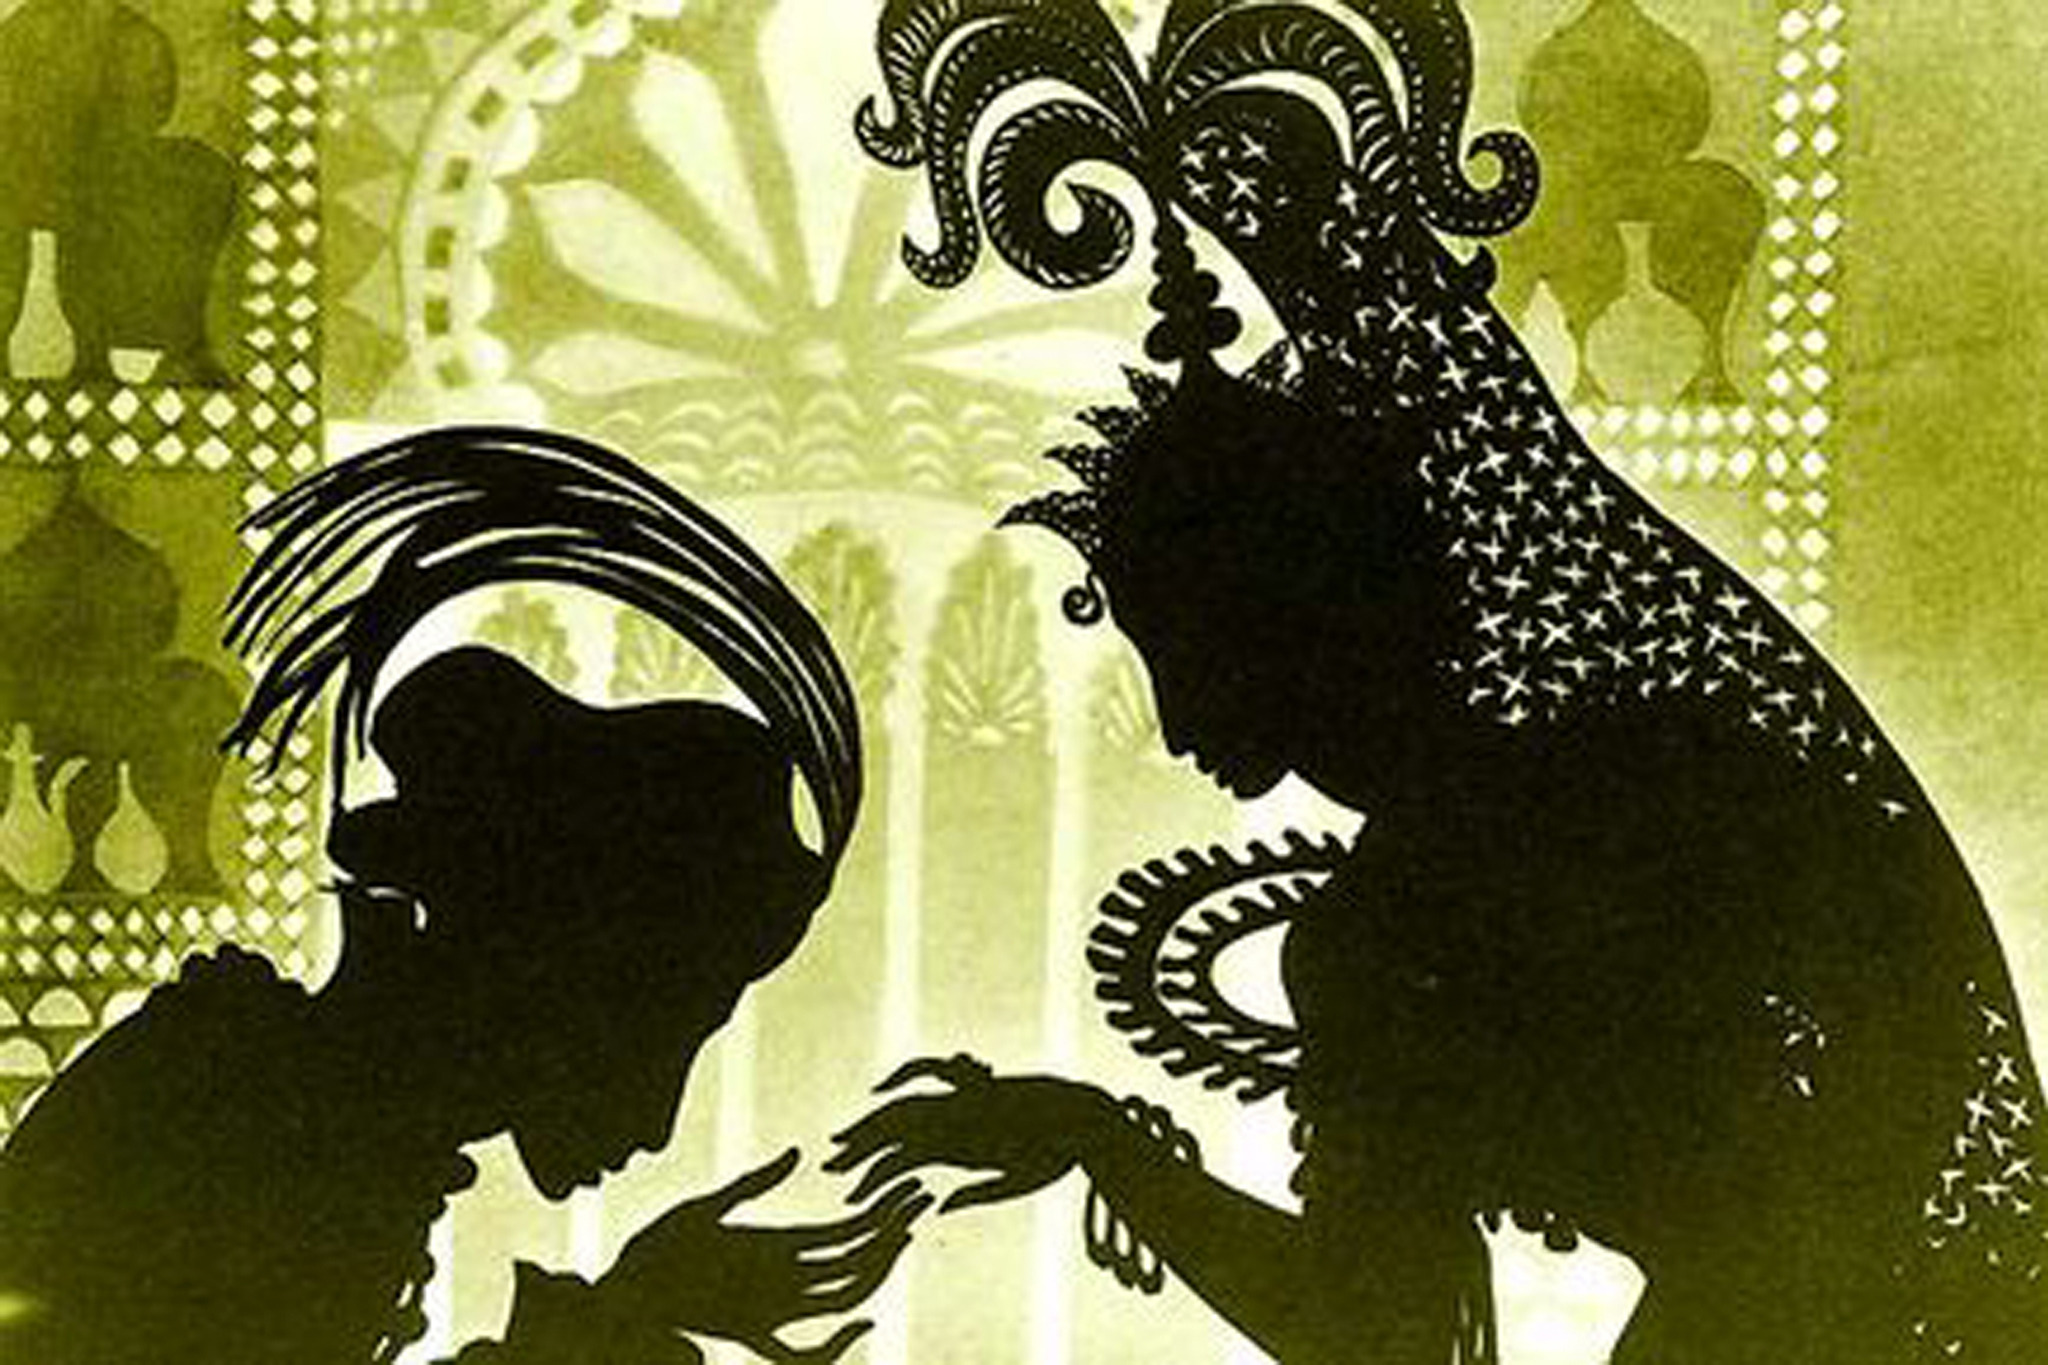 Best animated films: The Adventures of Prince Achmed